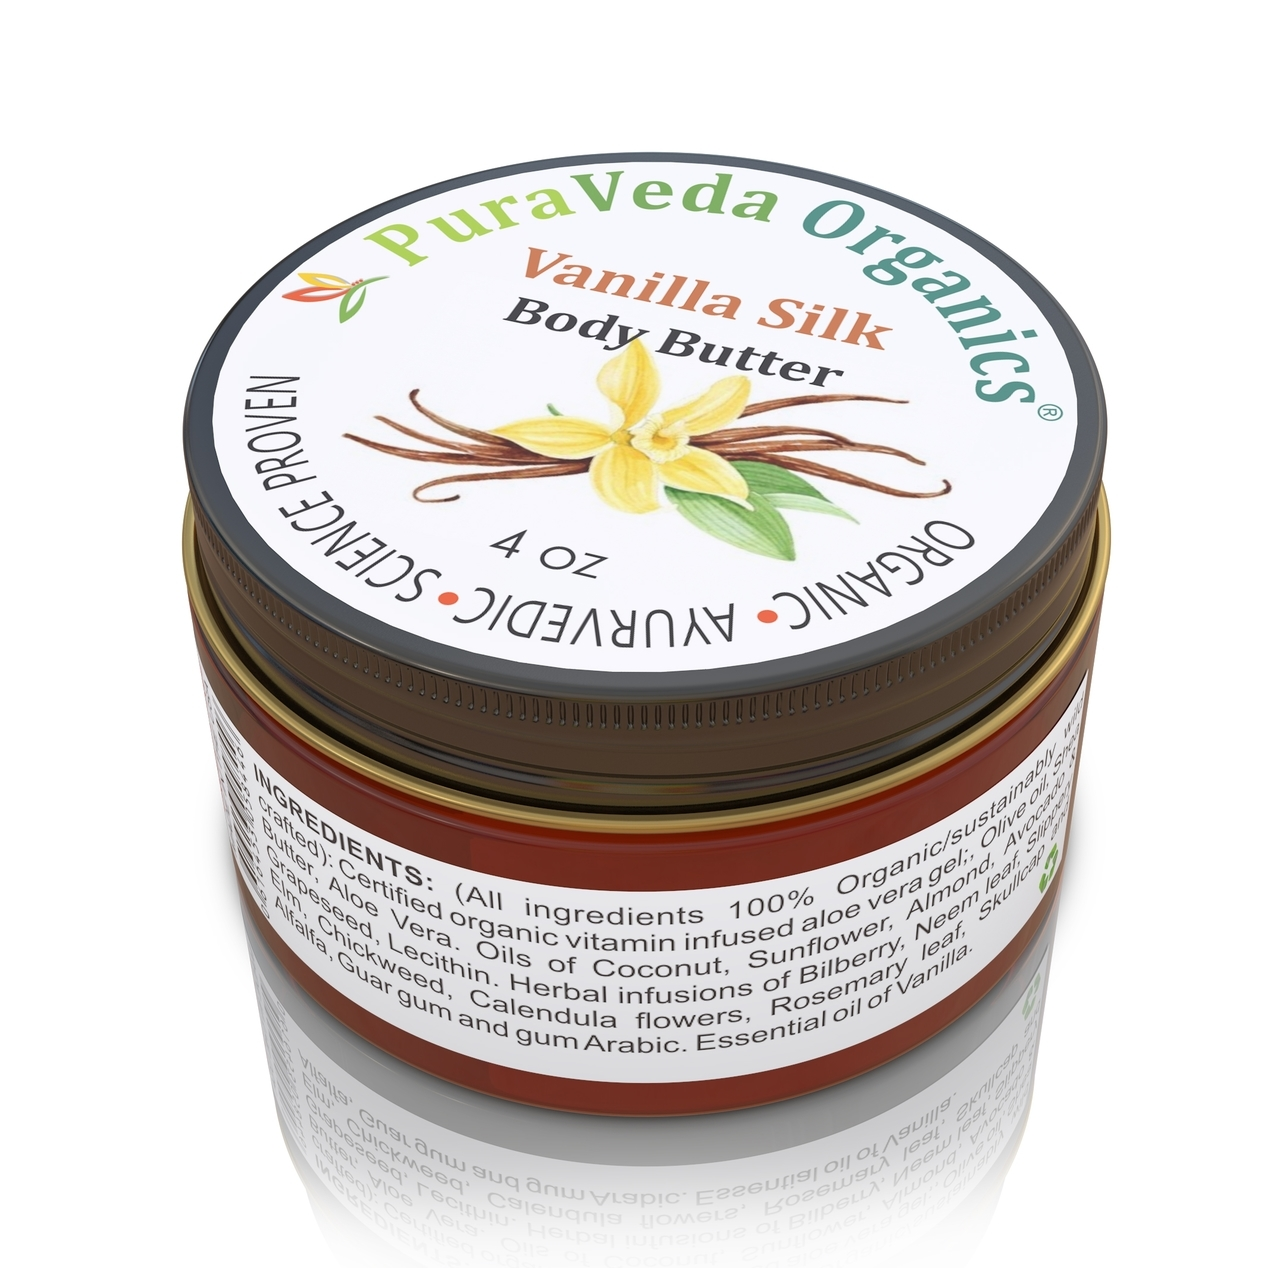 Vanilla Silk Body Butter